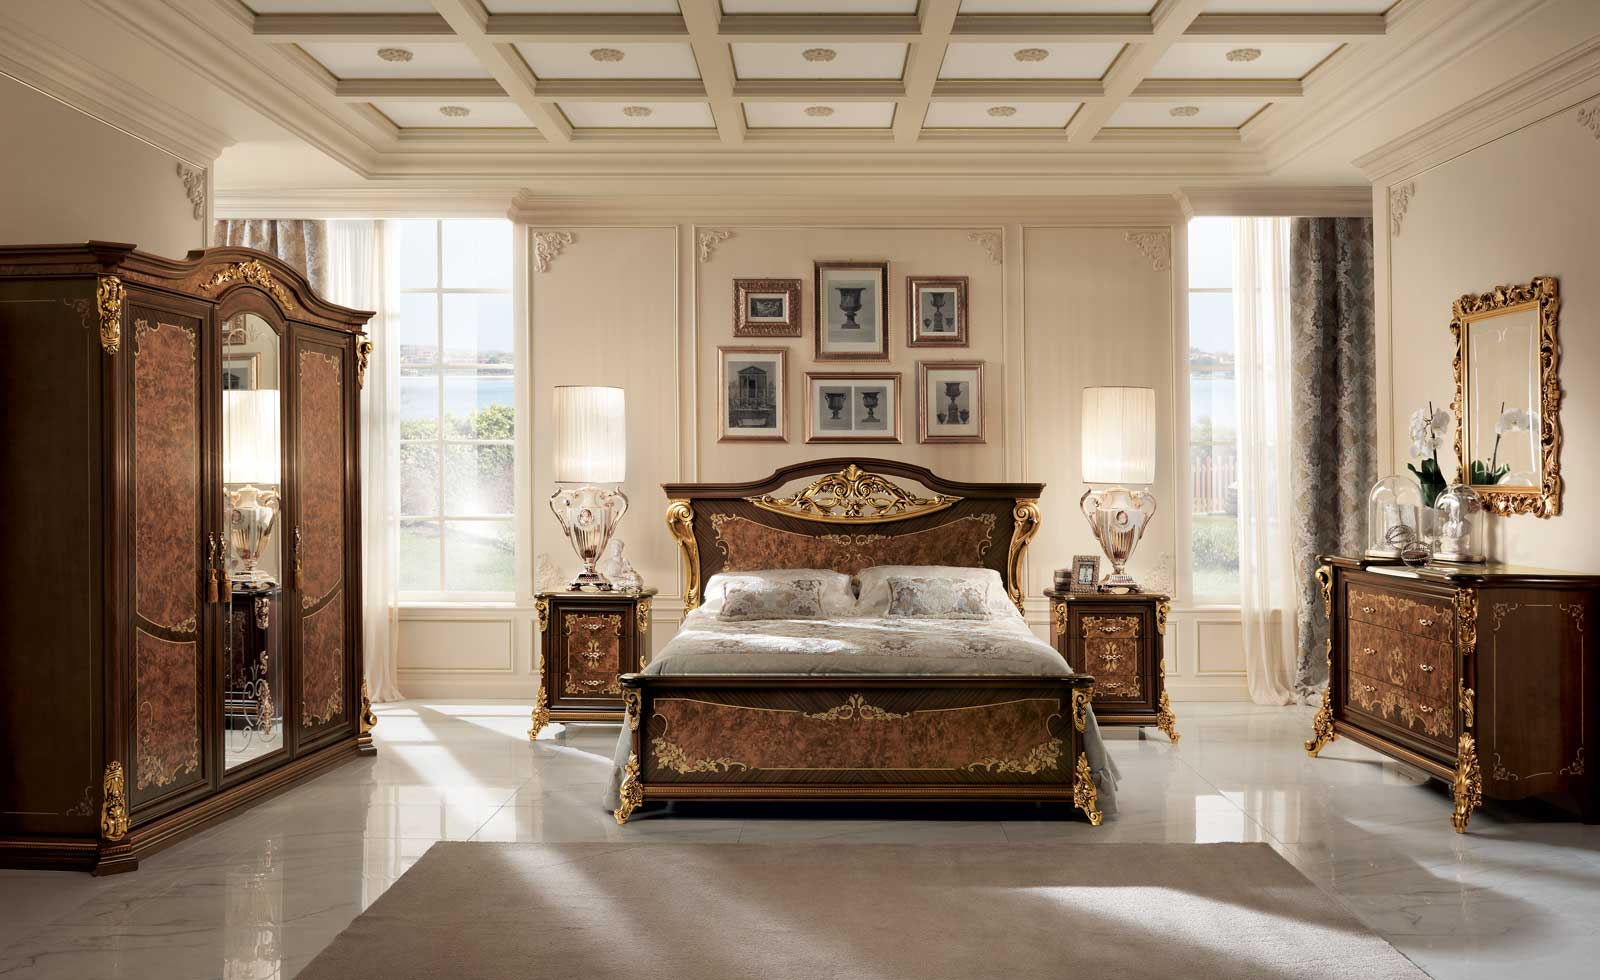 SINFONIA Bed Room 3